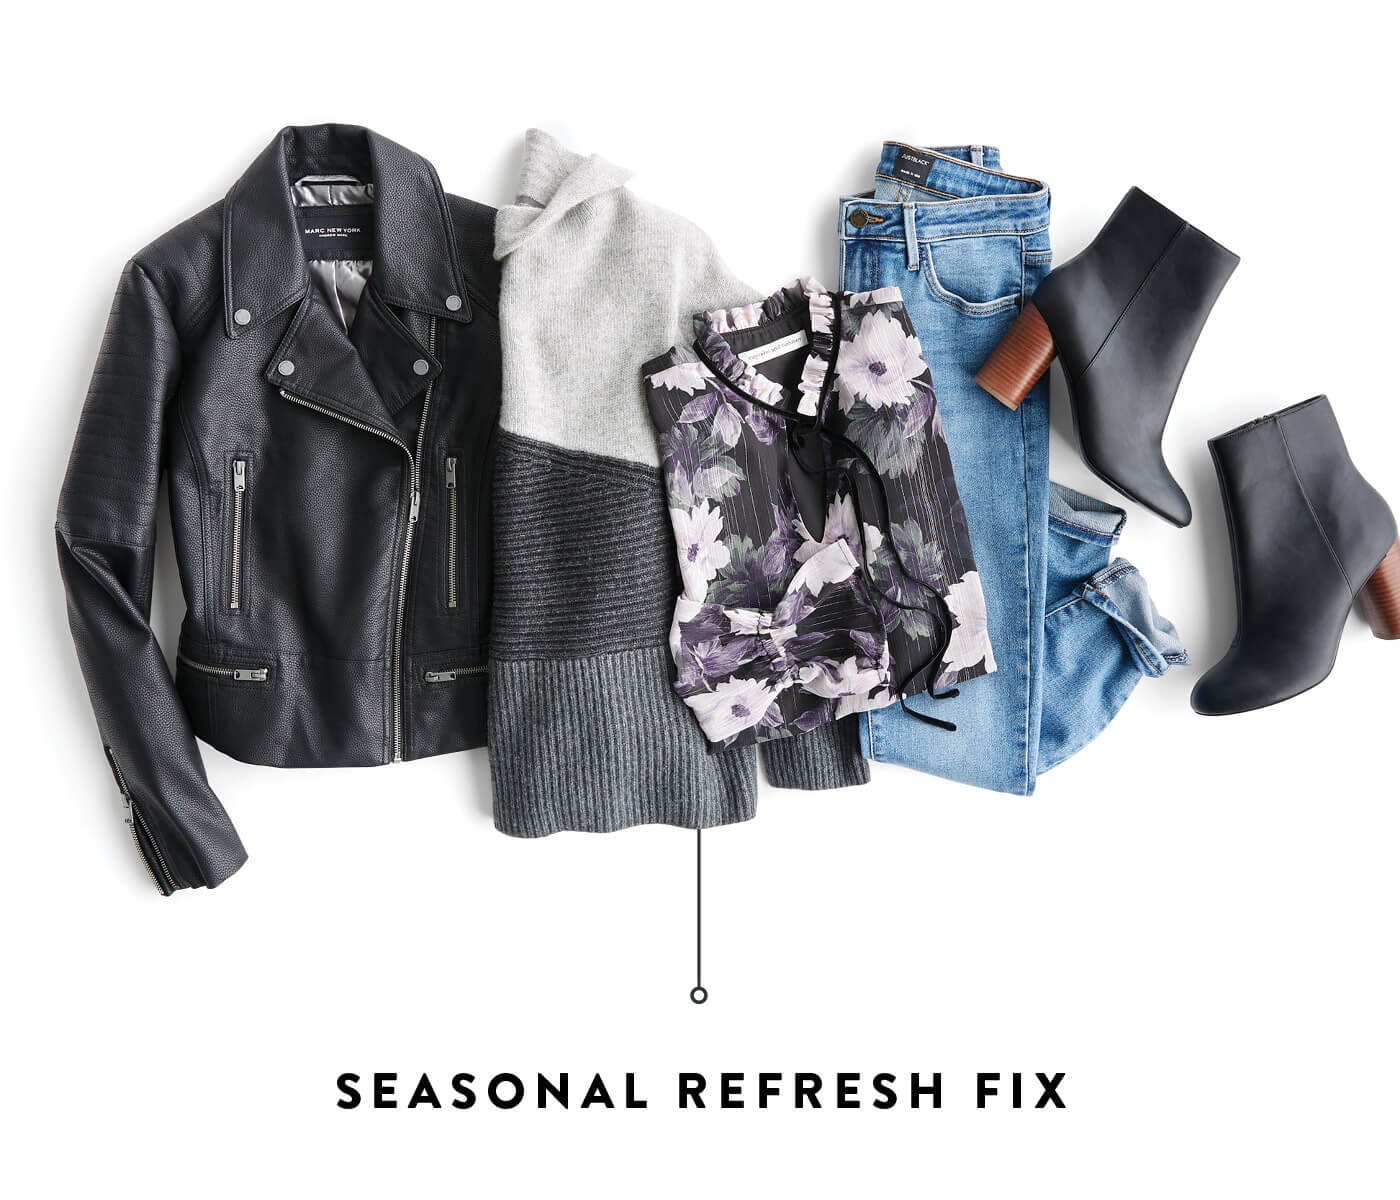 seasonal refresh fix